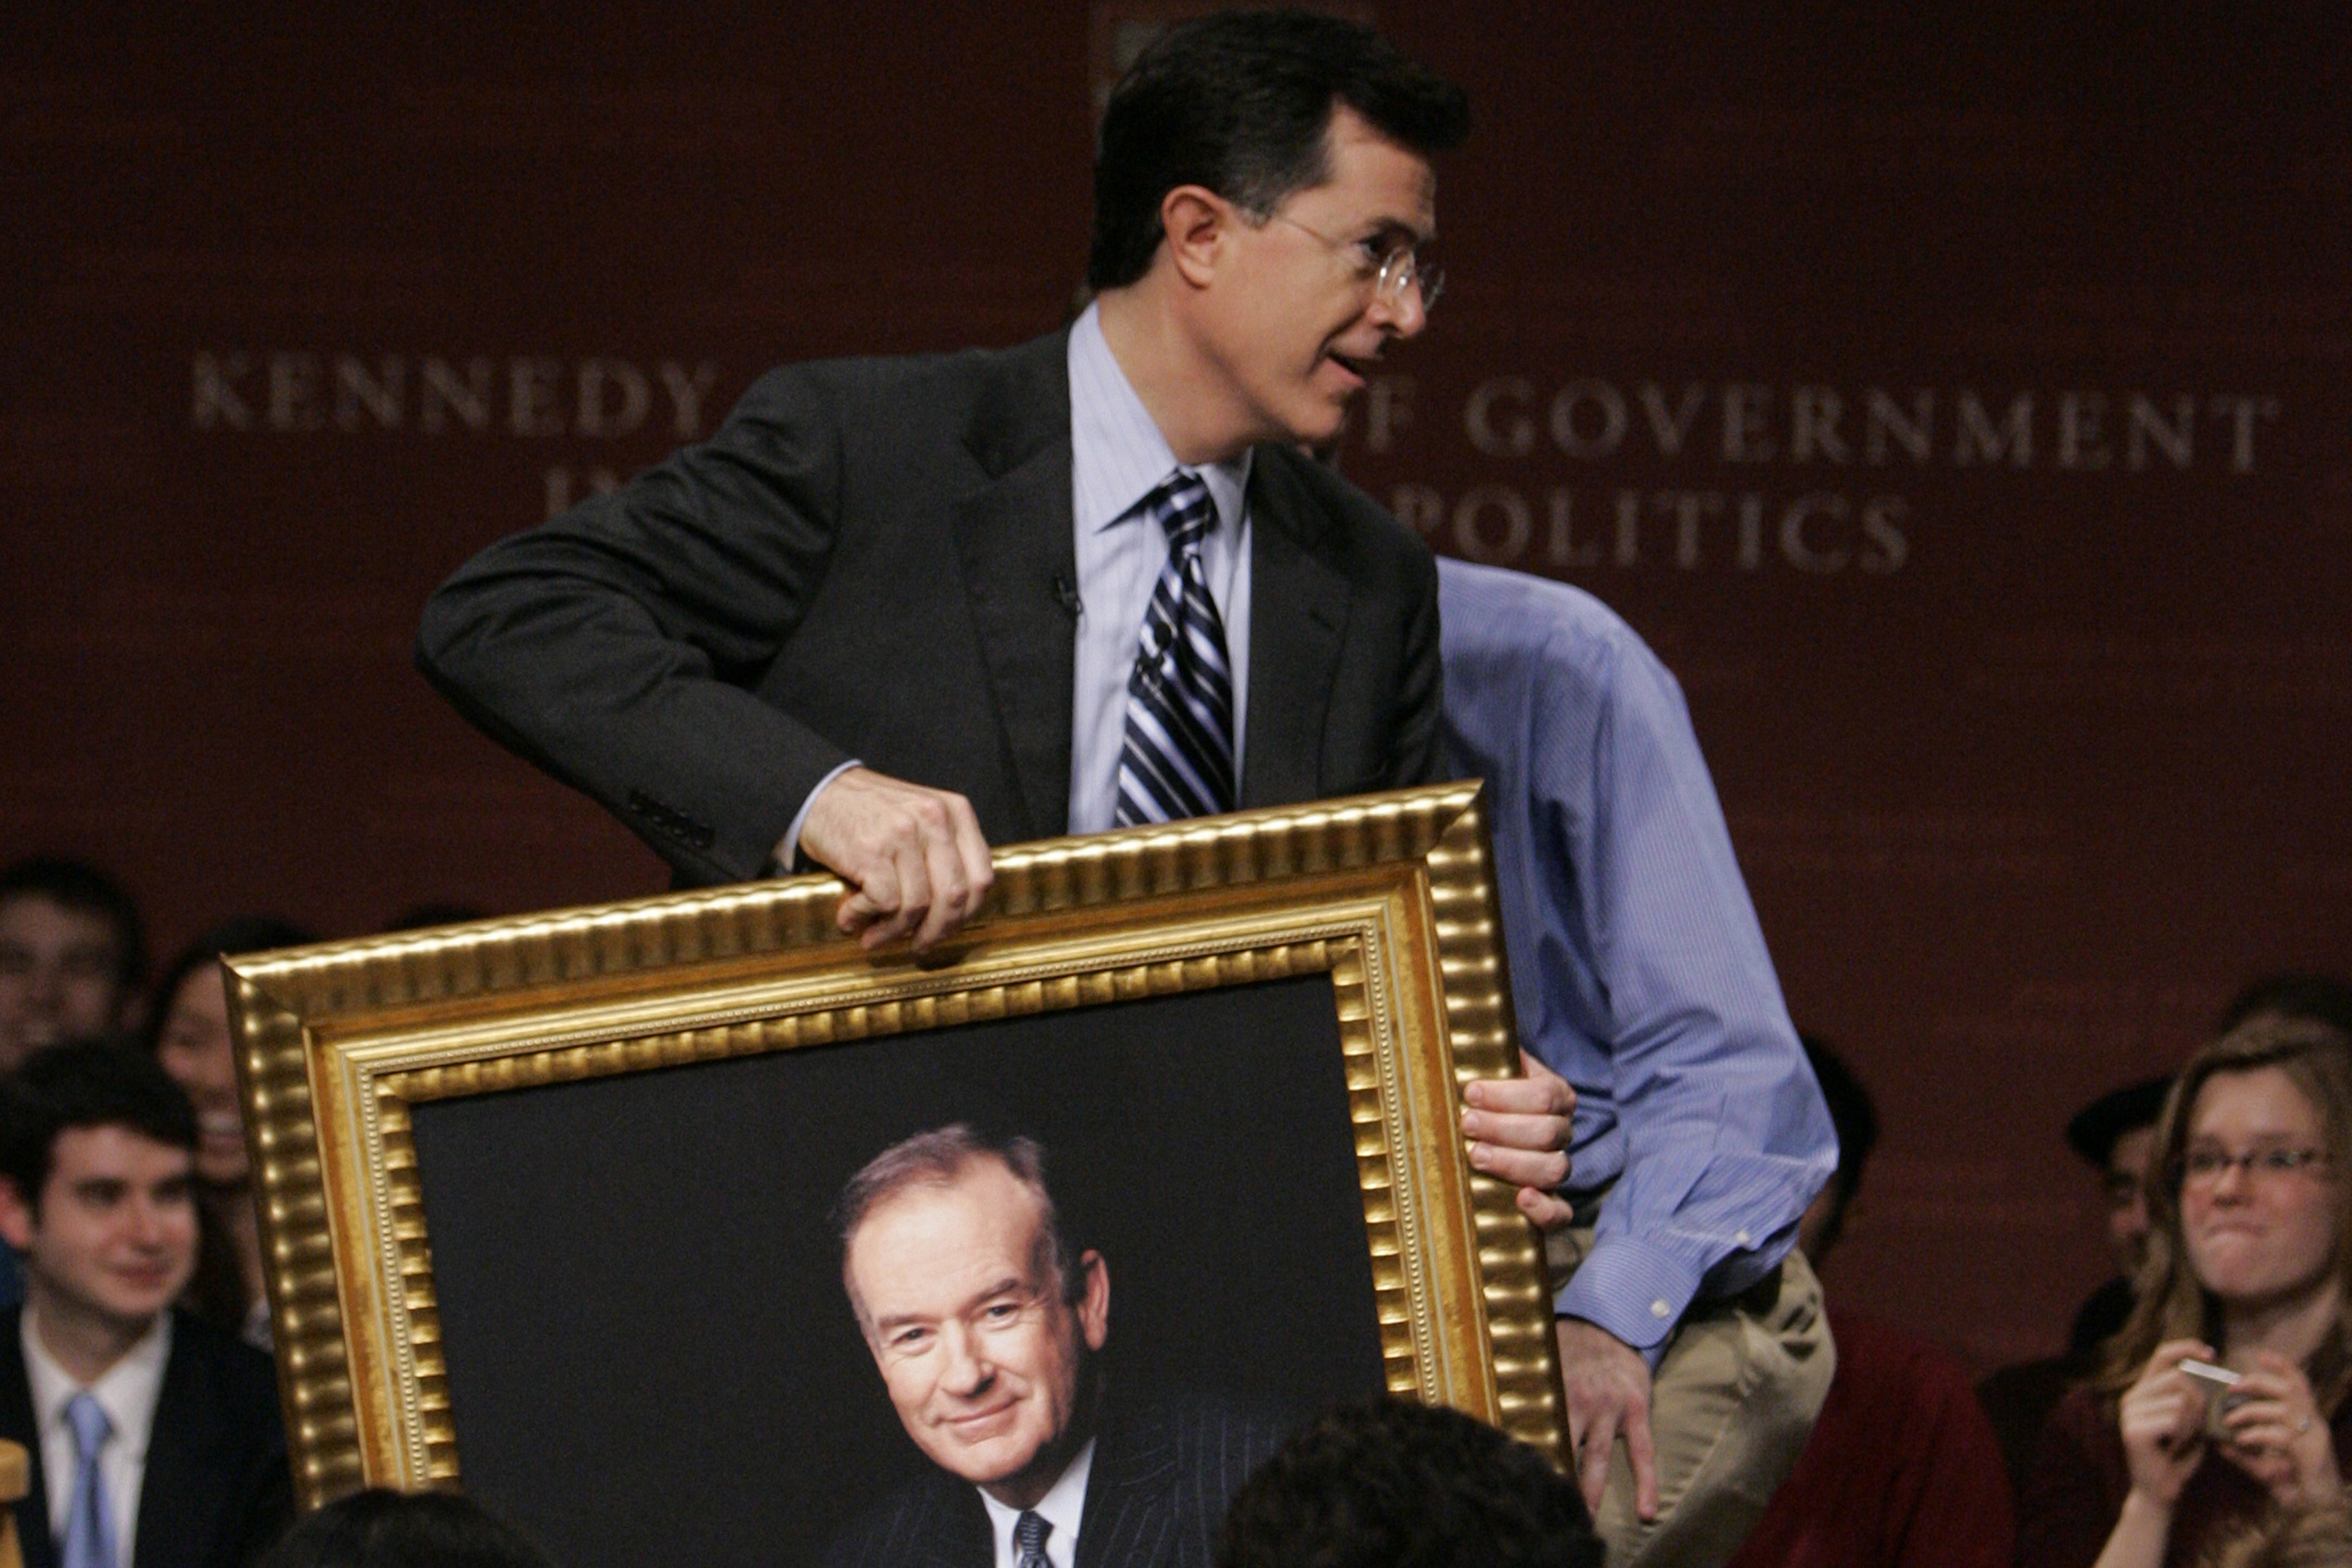 Comedian Stephen Colbert carries a portrait of radio talk show host Bill O'Reilly while addressing a gathering at Harvard University's John F. Kennedy School of Government in Cambridge, Mass. on Dec. 1, 2006.